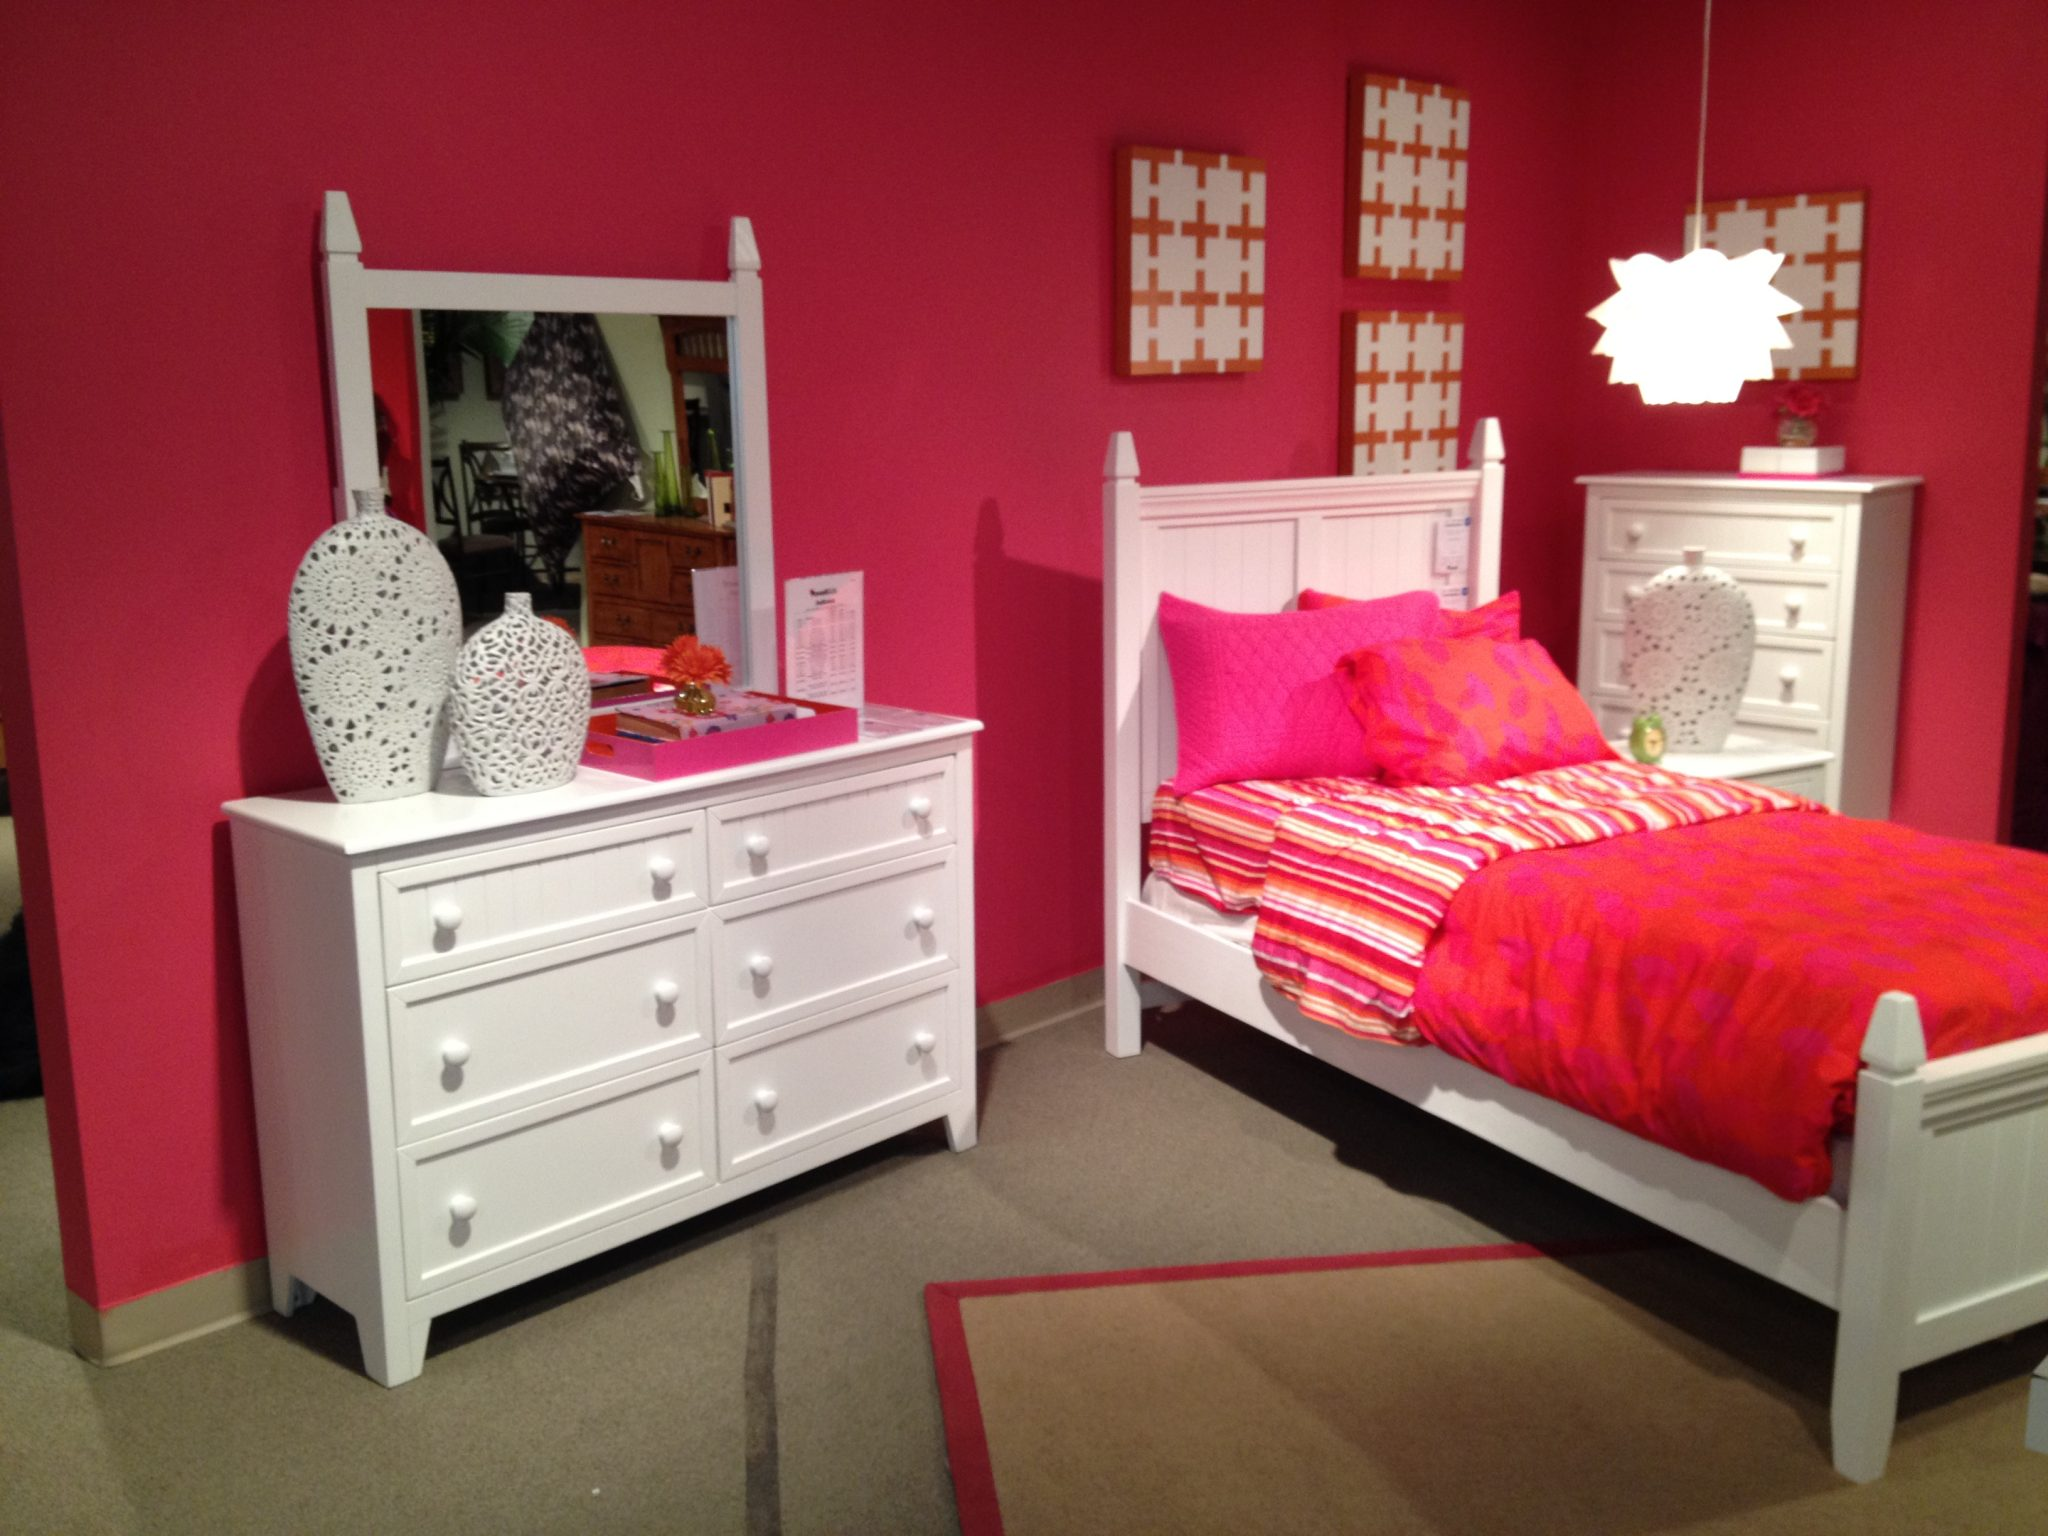 new-white-twin-bed-at-totally-kids-fun-furniture-and-toys